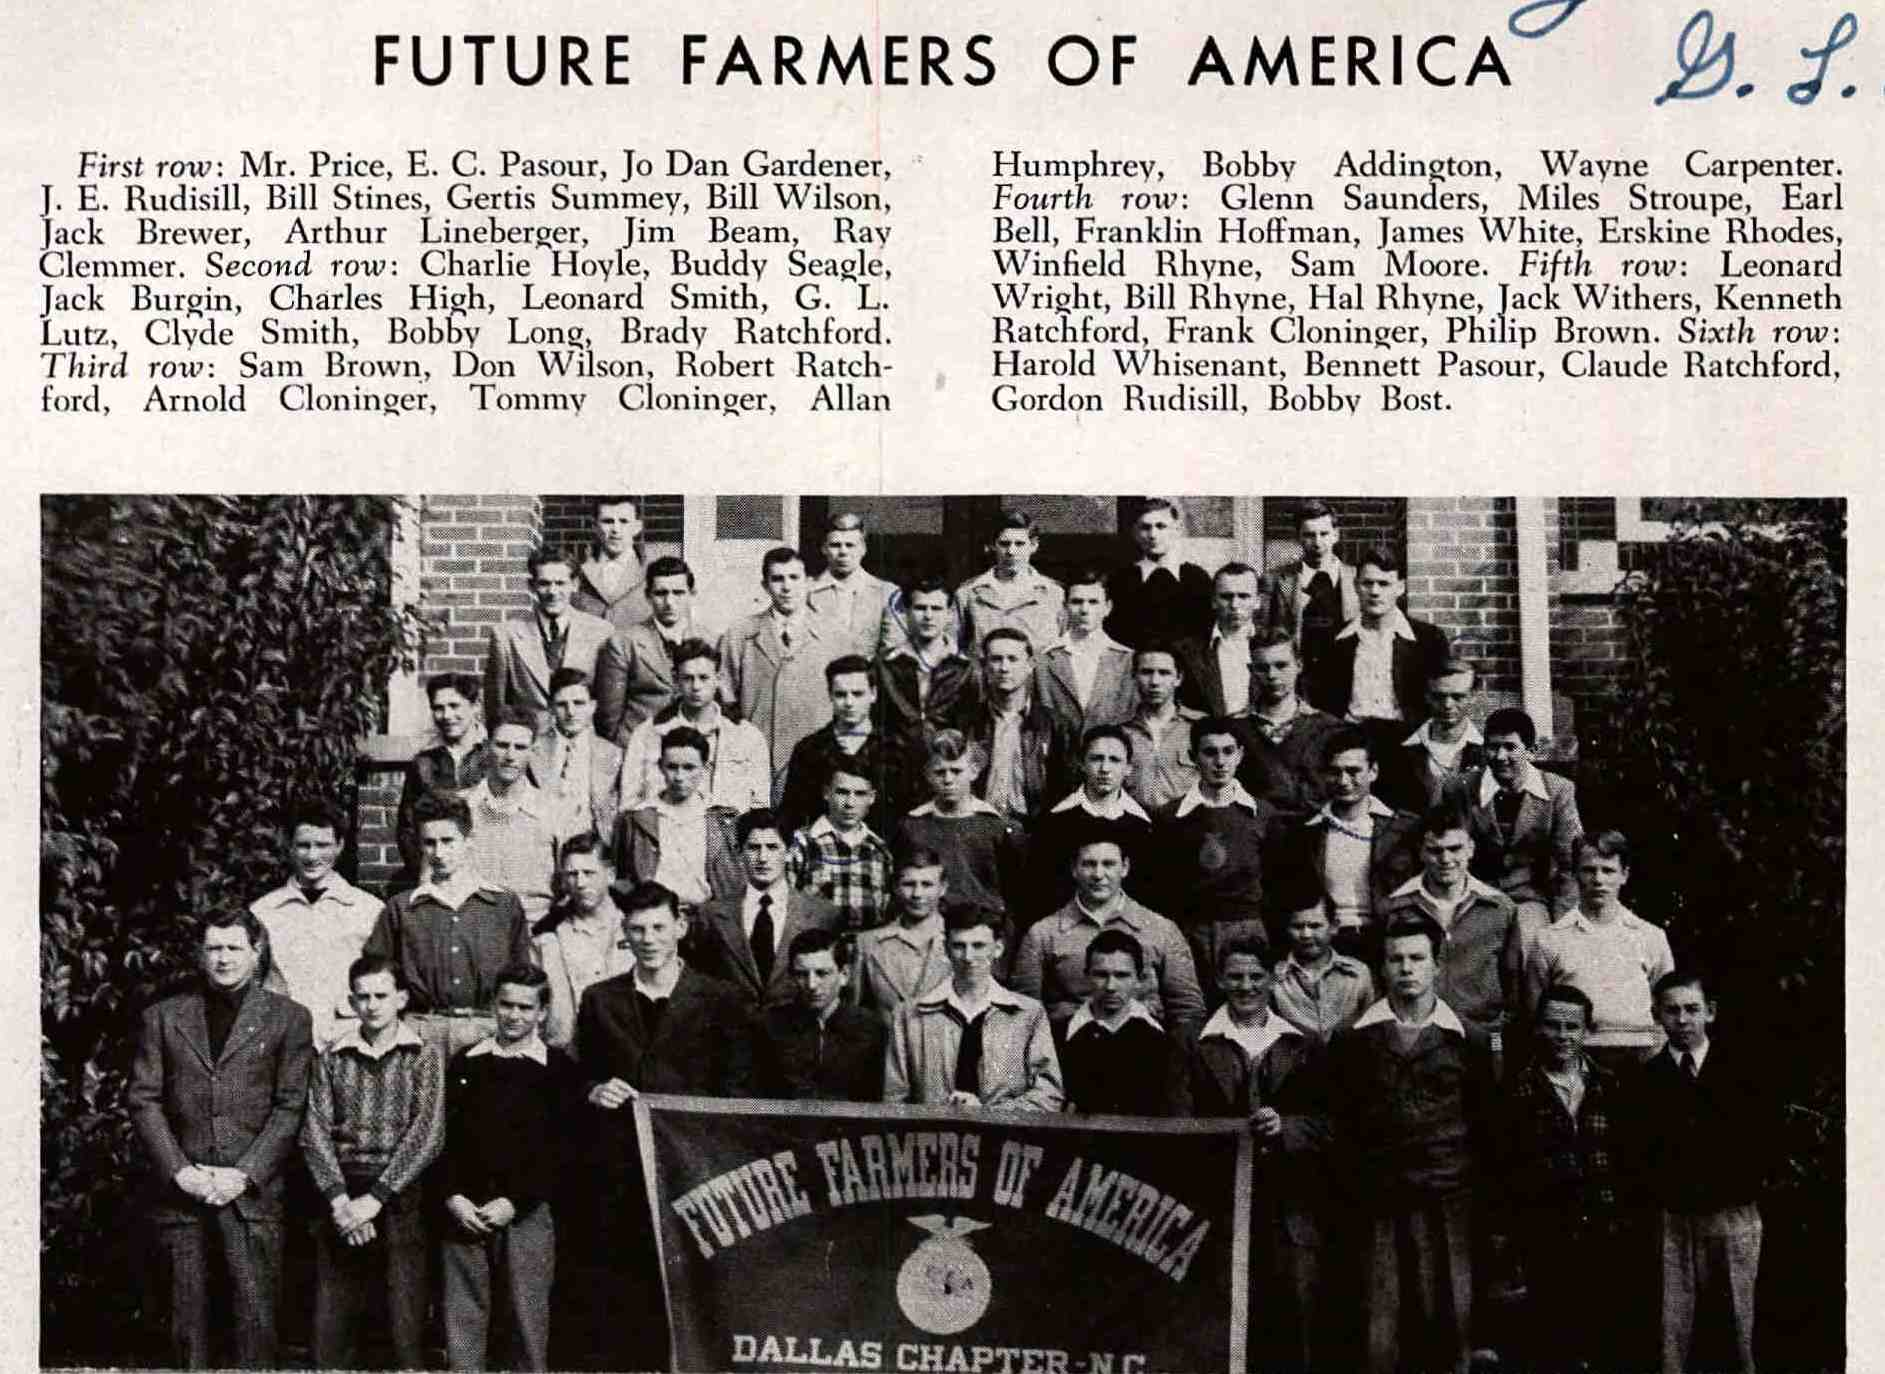 .greenhorns to promote recruit and support new farmers in america